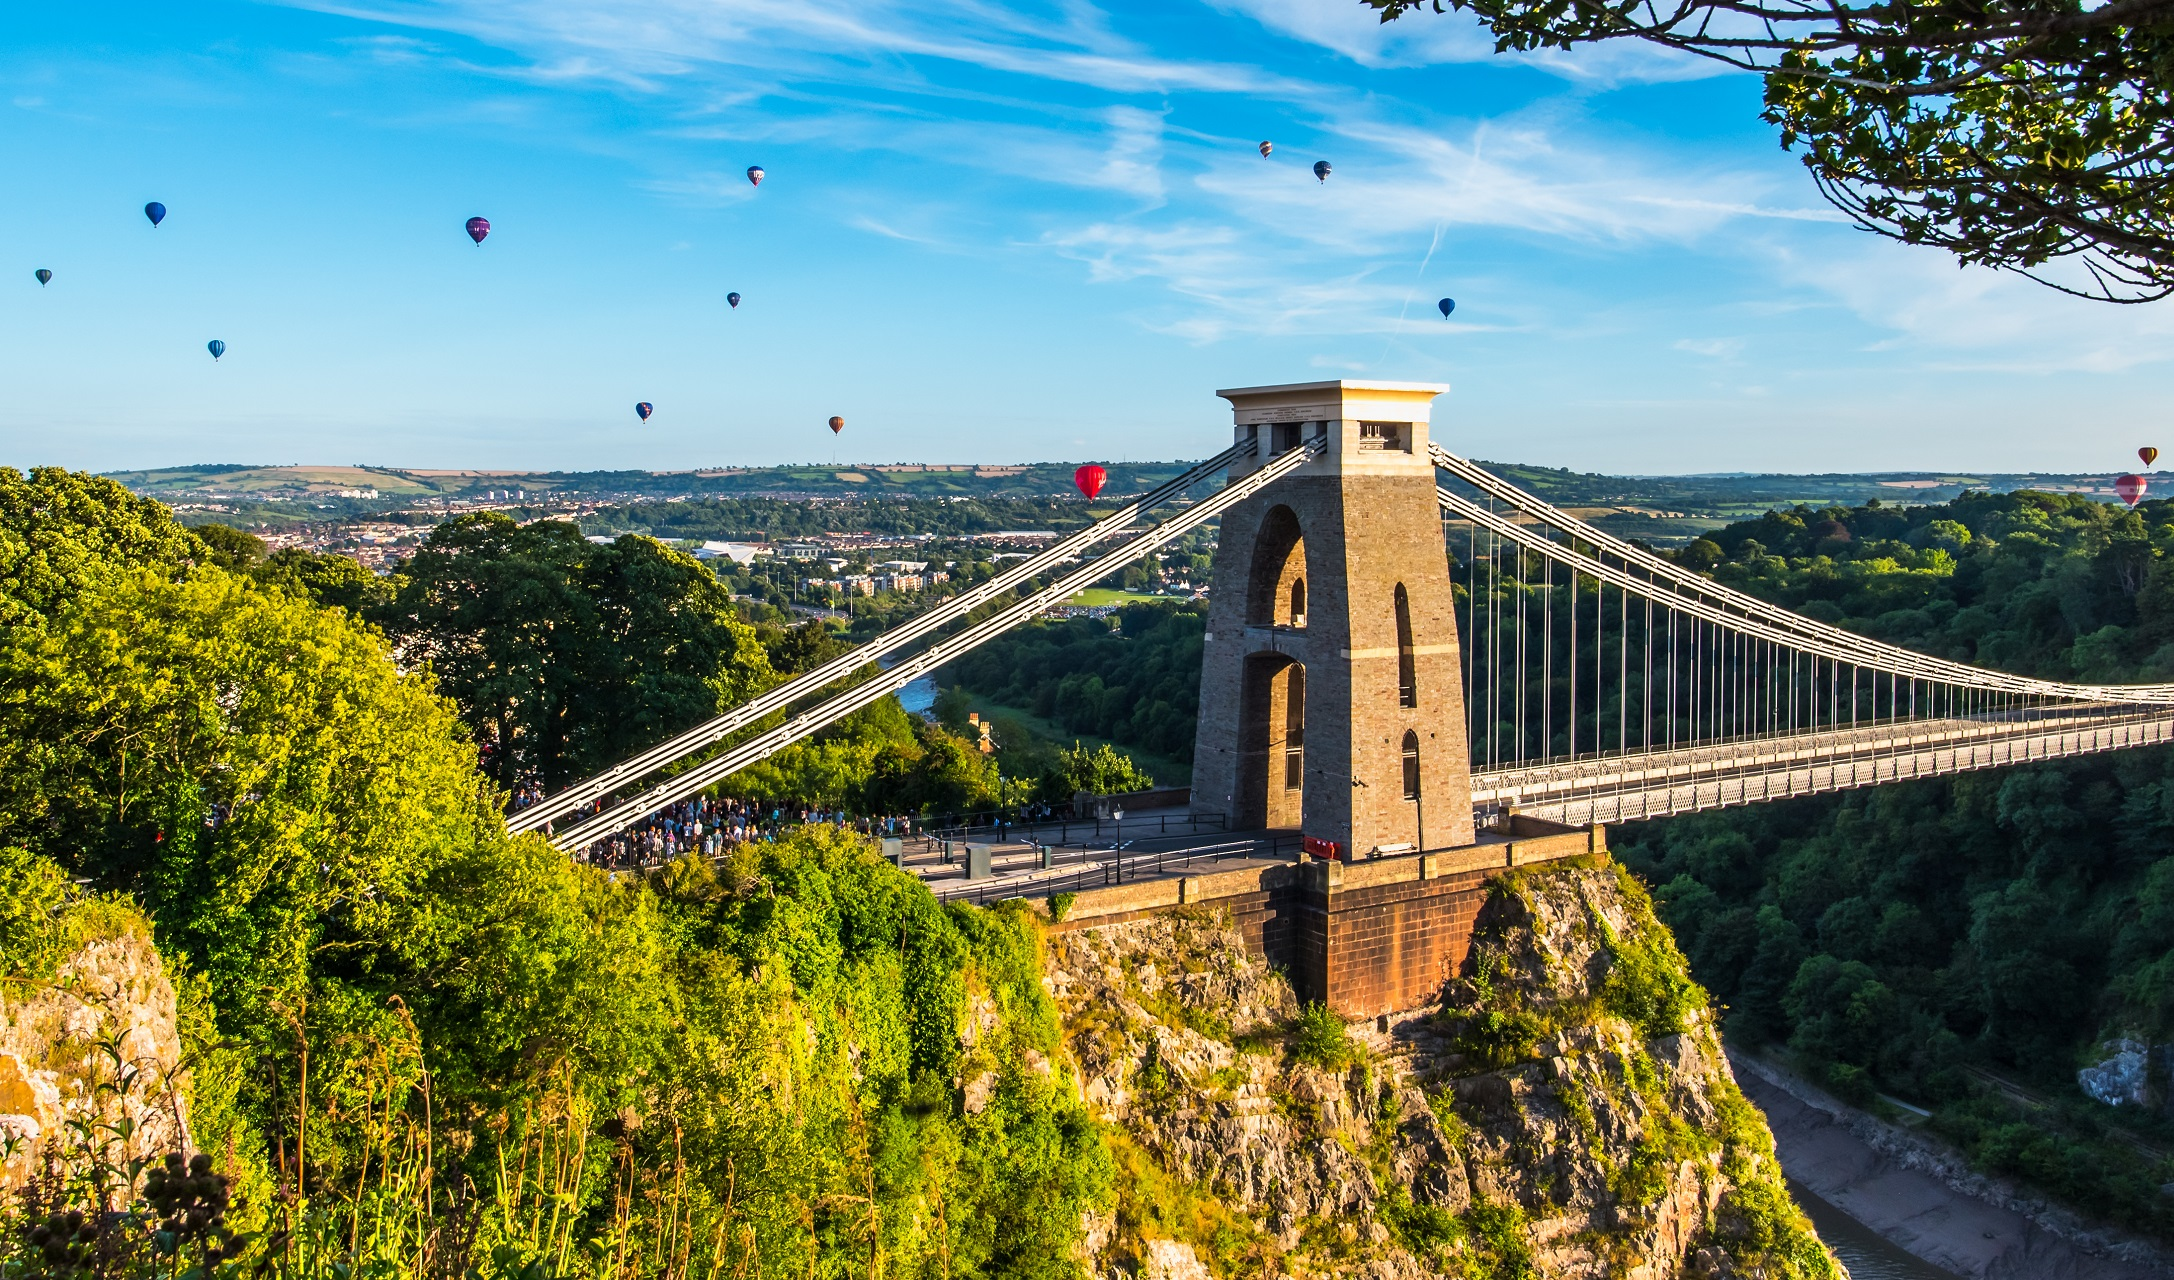 Balloon Festival in Bristol - Blick auf die Clifton Suspension Bridge.